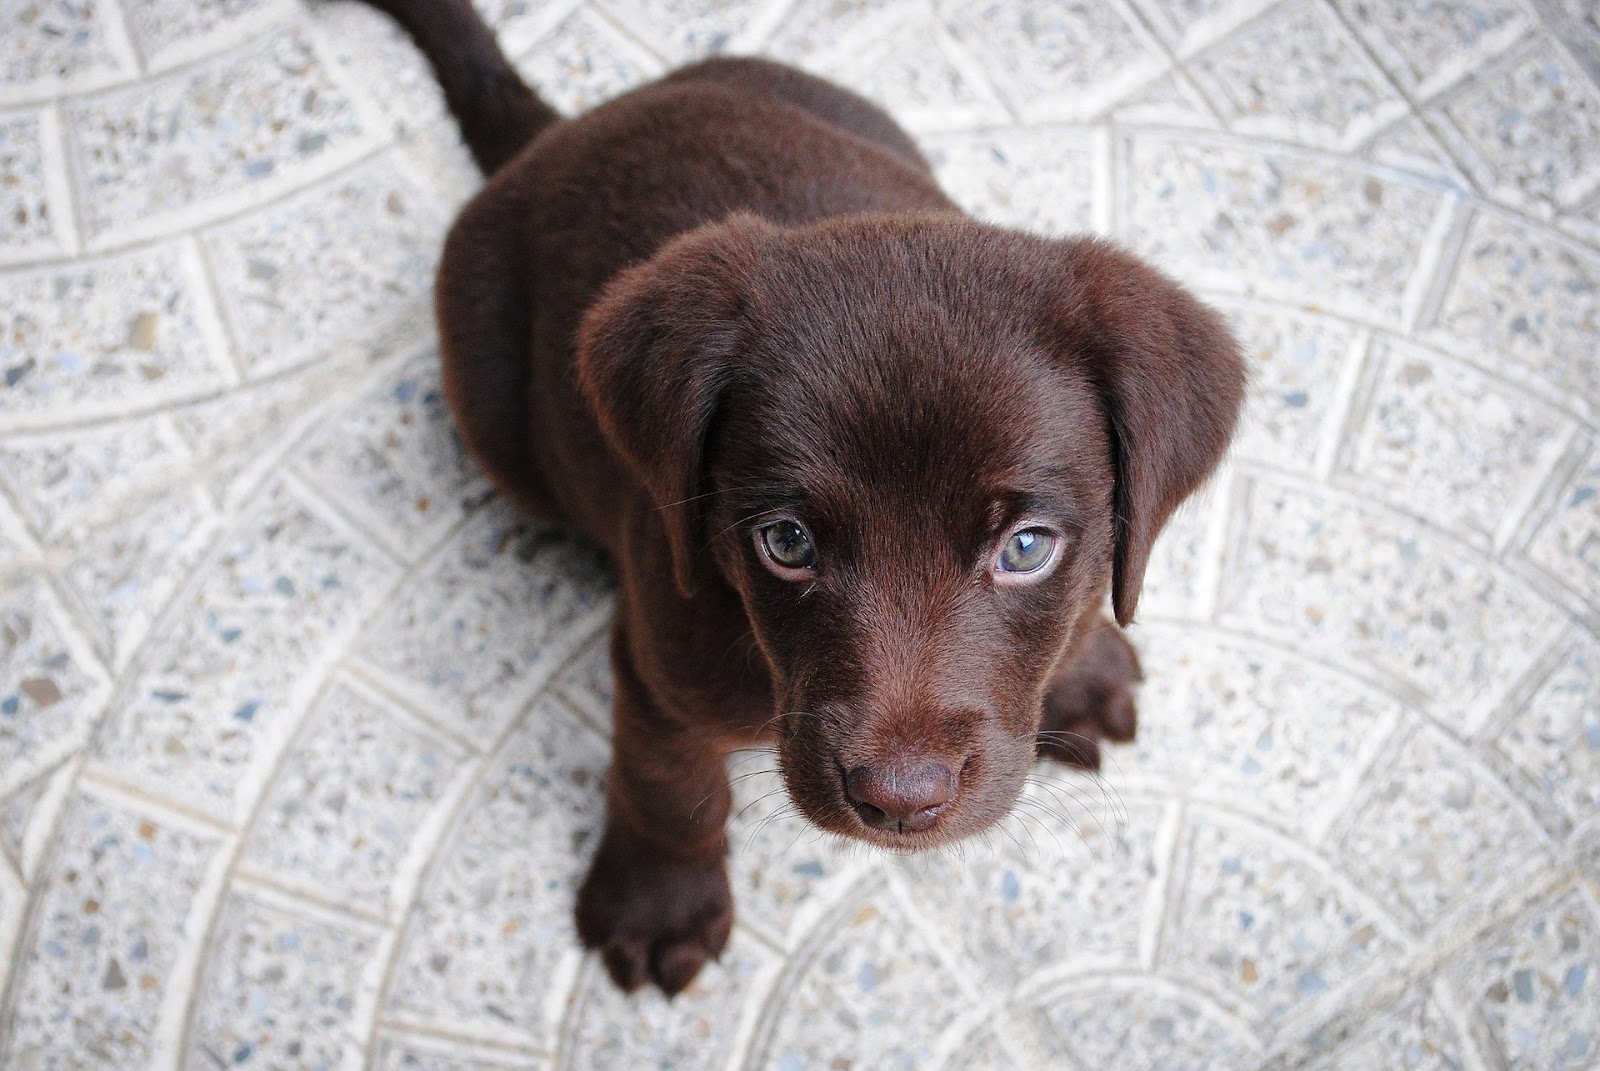 Small brown puppy sitting on grey floor and waiting for command